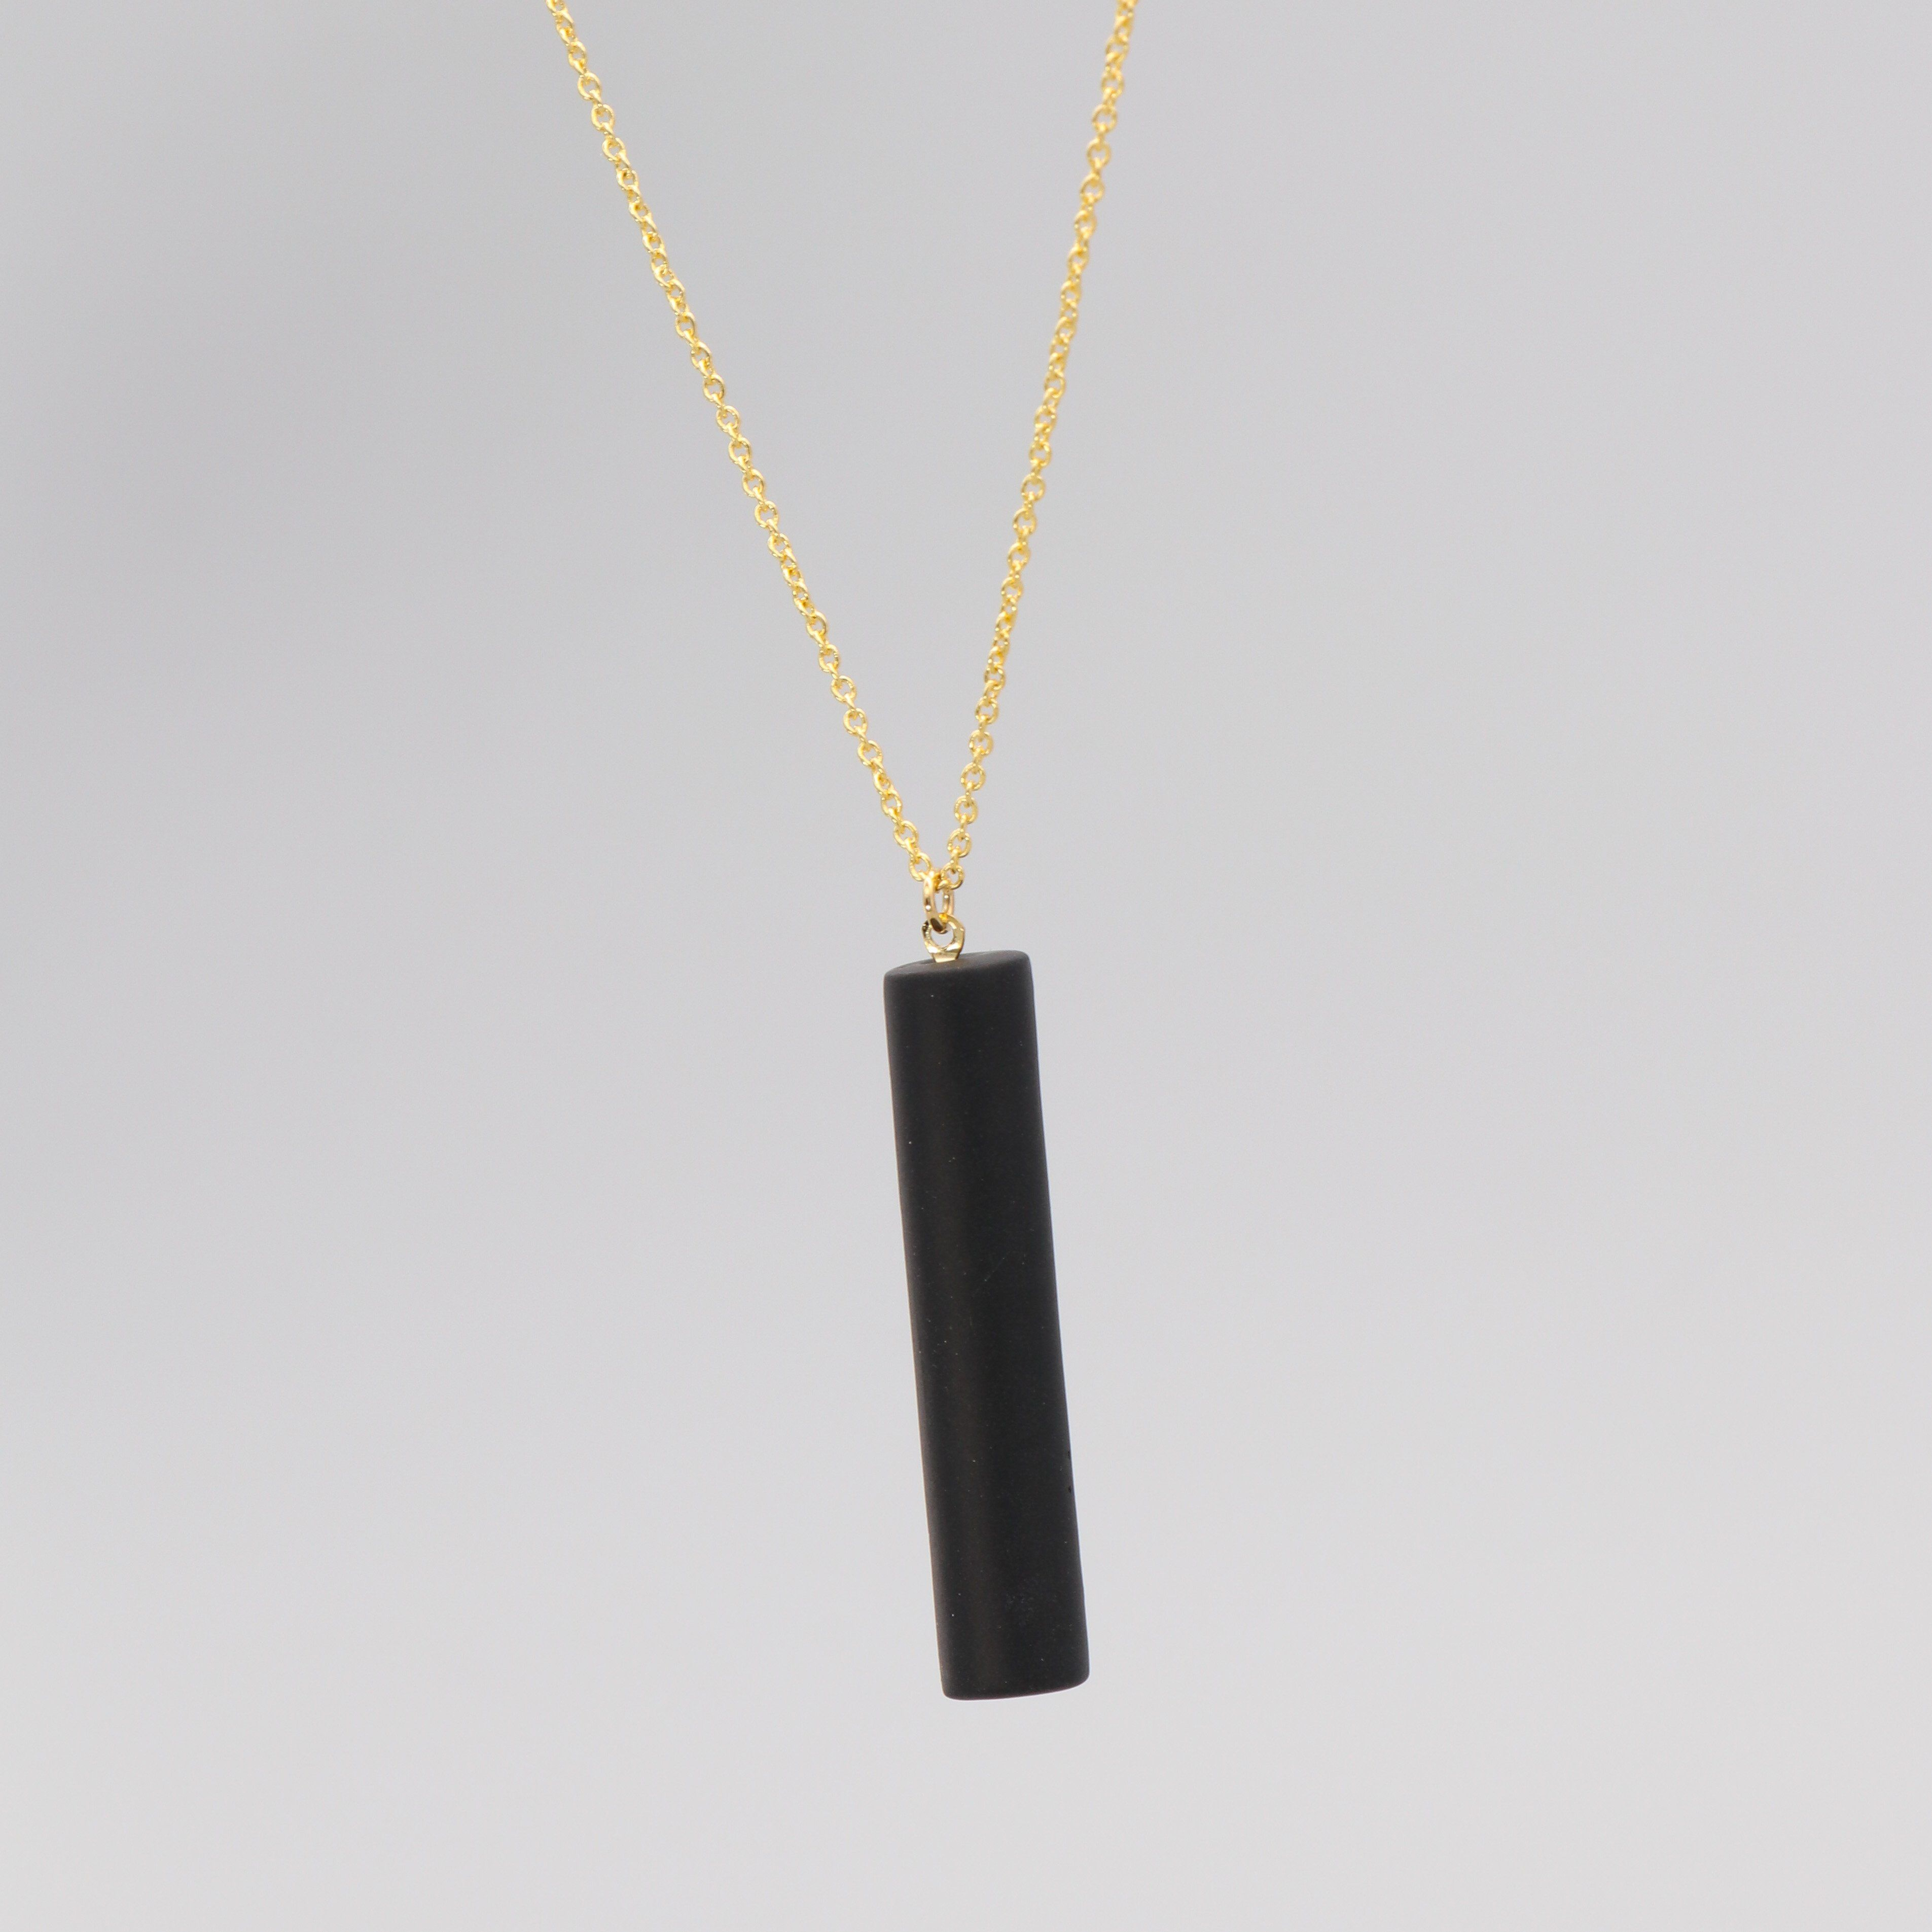 Gold necklace with a black bar pendant